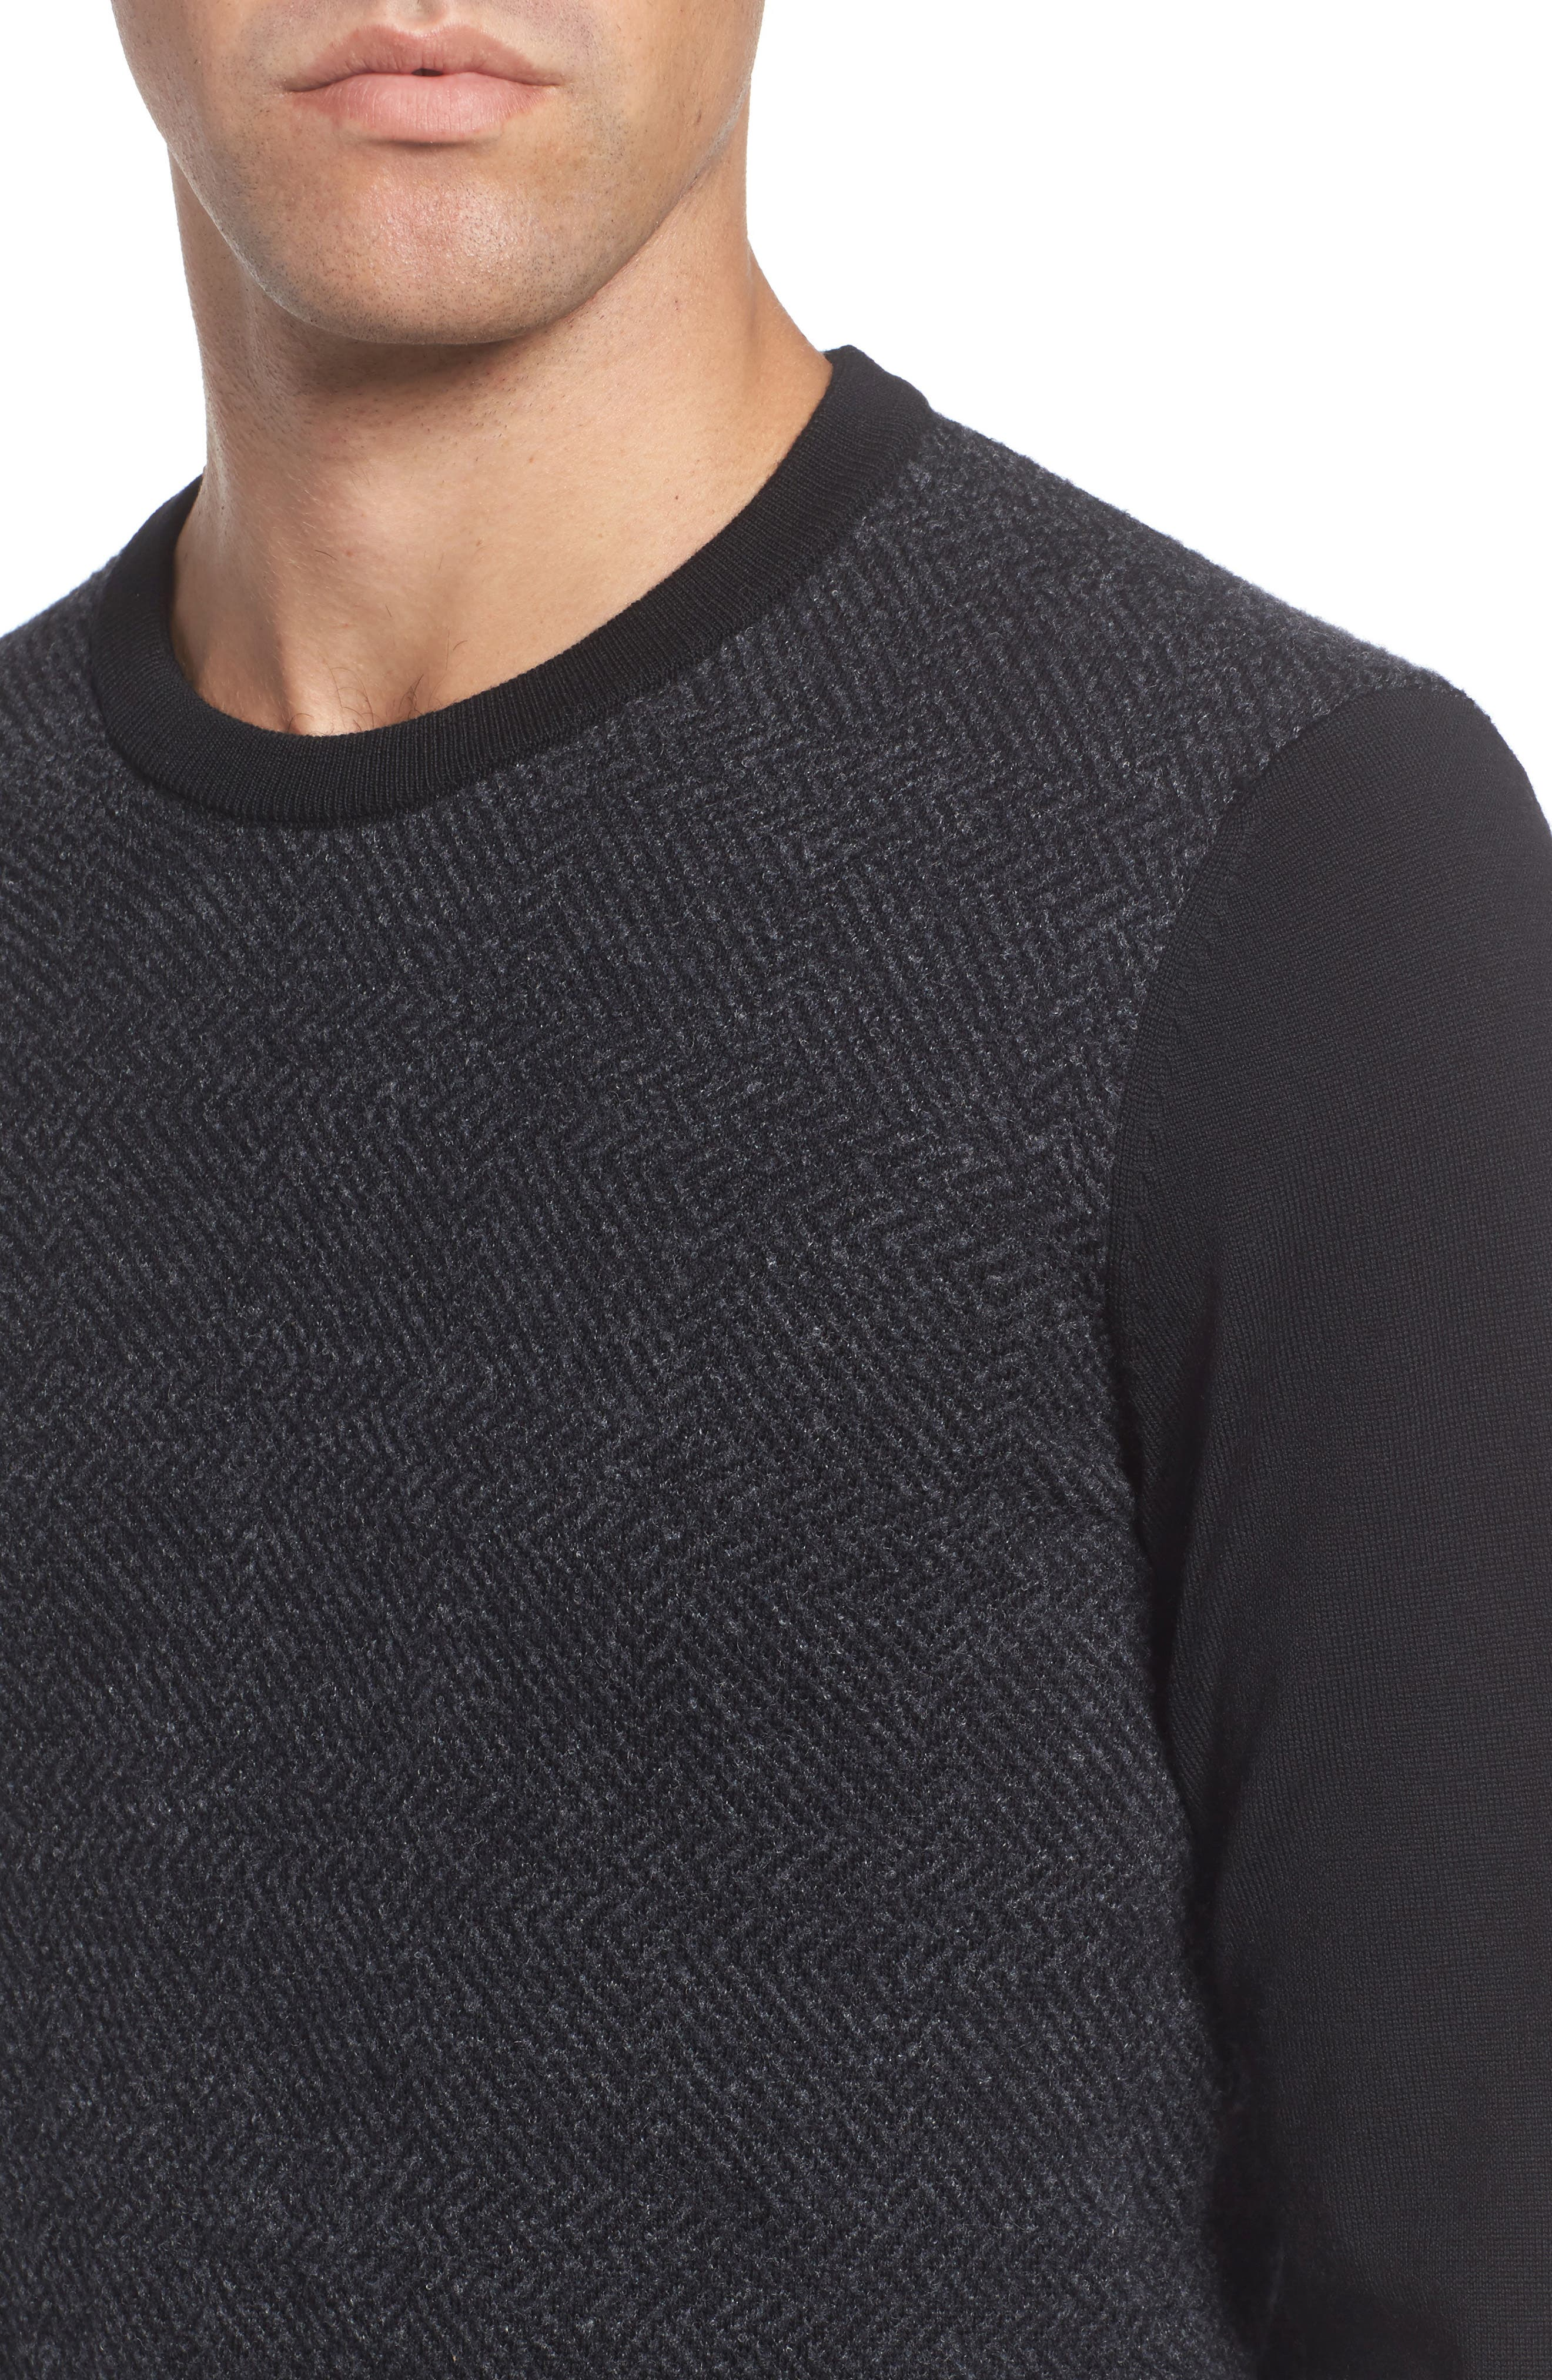 Notto Wool Blend Sweater,                             Alternate thumbnail 4, color,                             Black